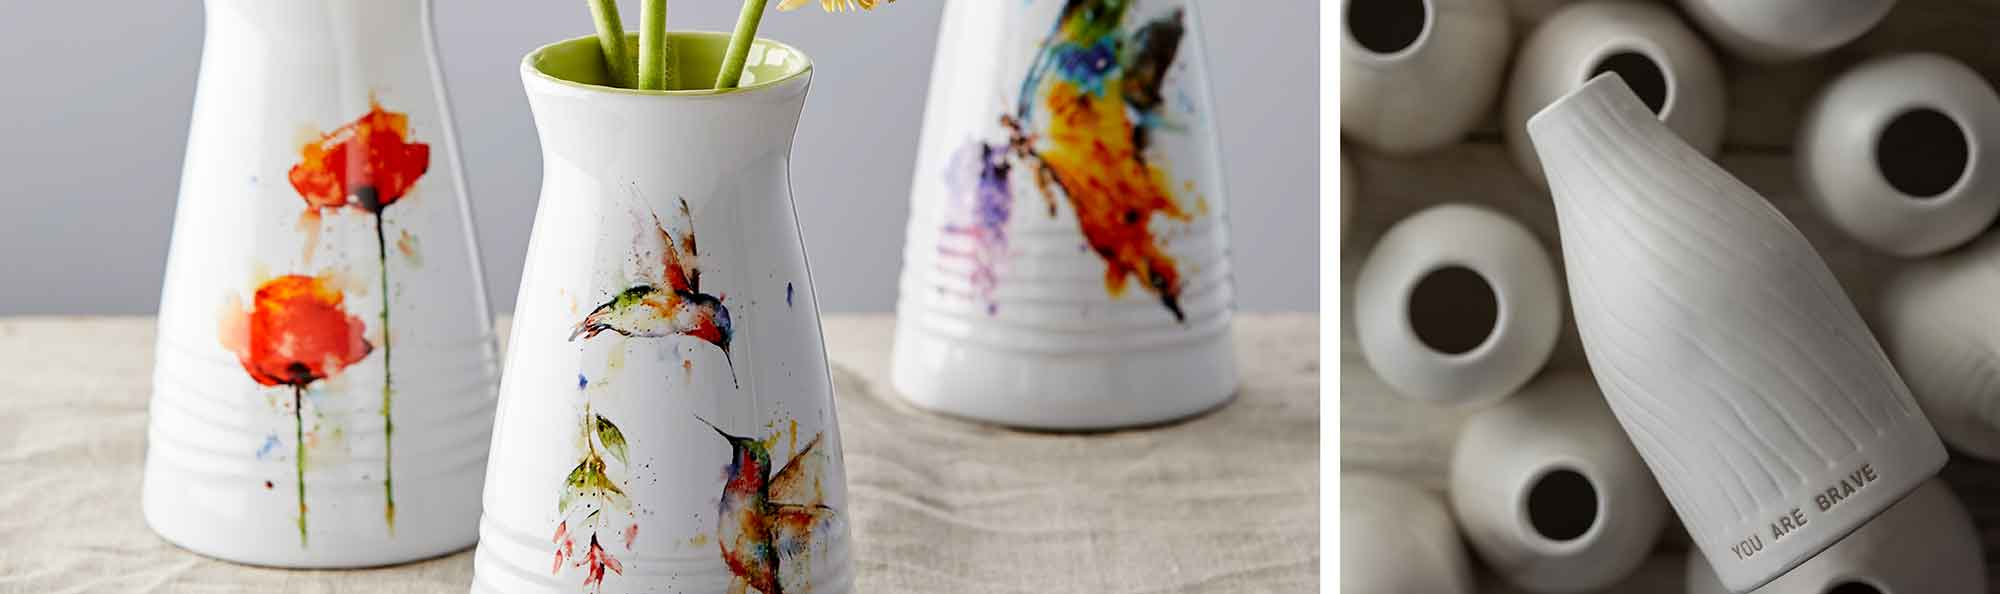 Water colored vases of flowers with flowers inside